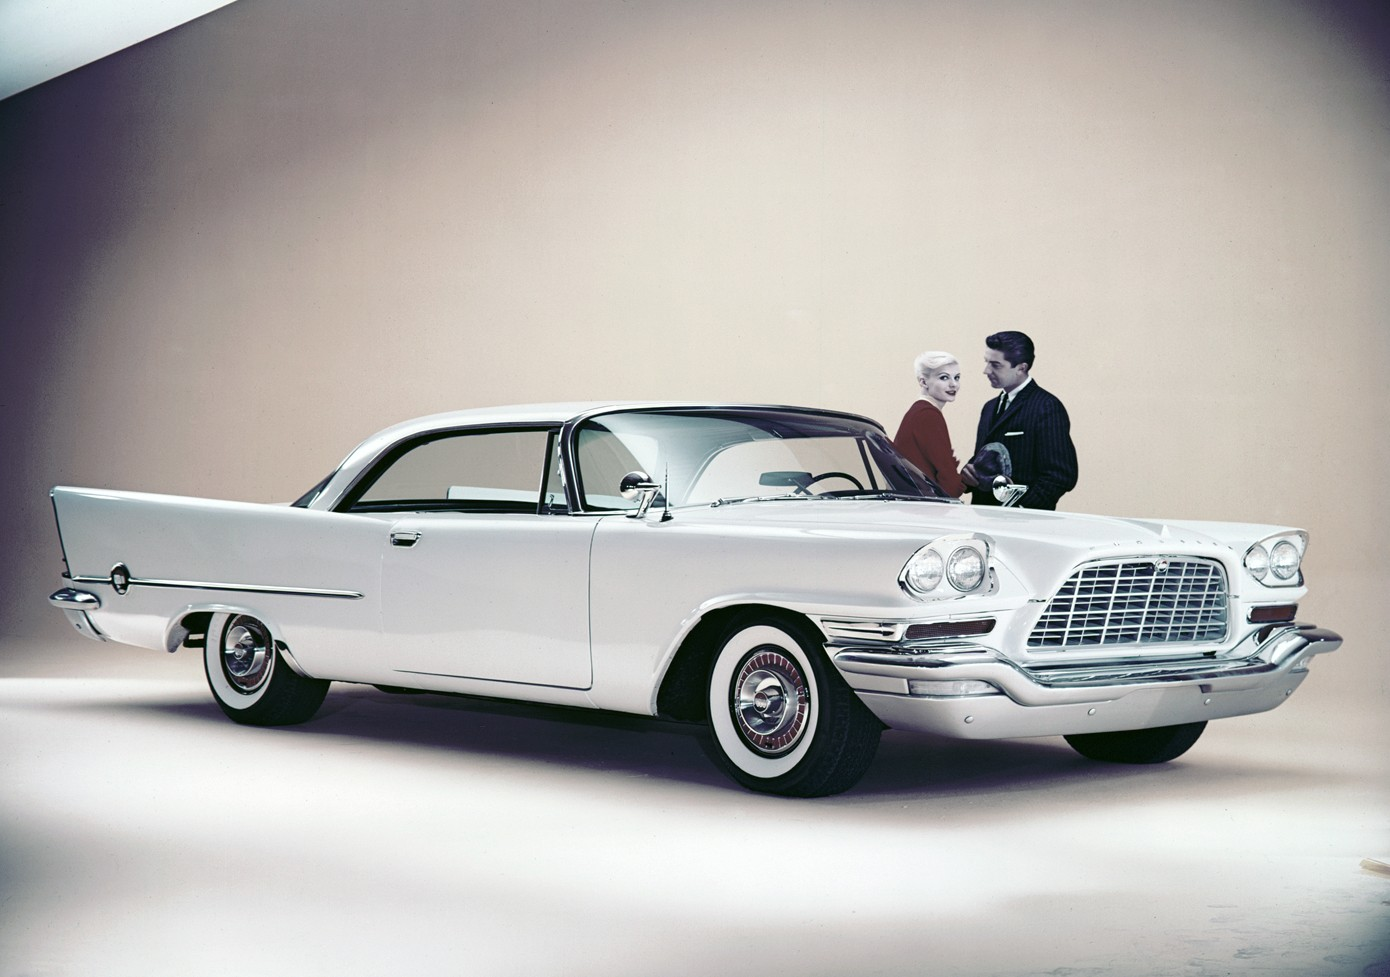 Chrysler 300 2016 Hemi >> CHRYSLER 300C specs - 1957, 1958, 1959 - autoevolution